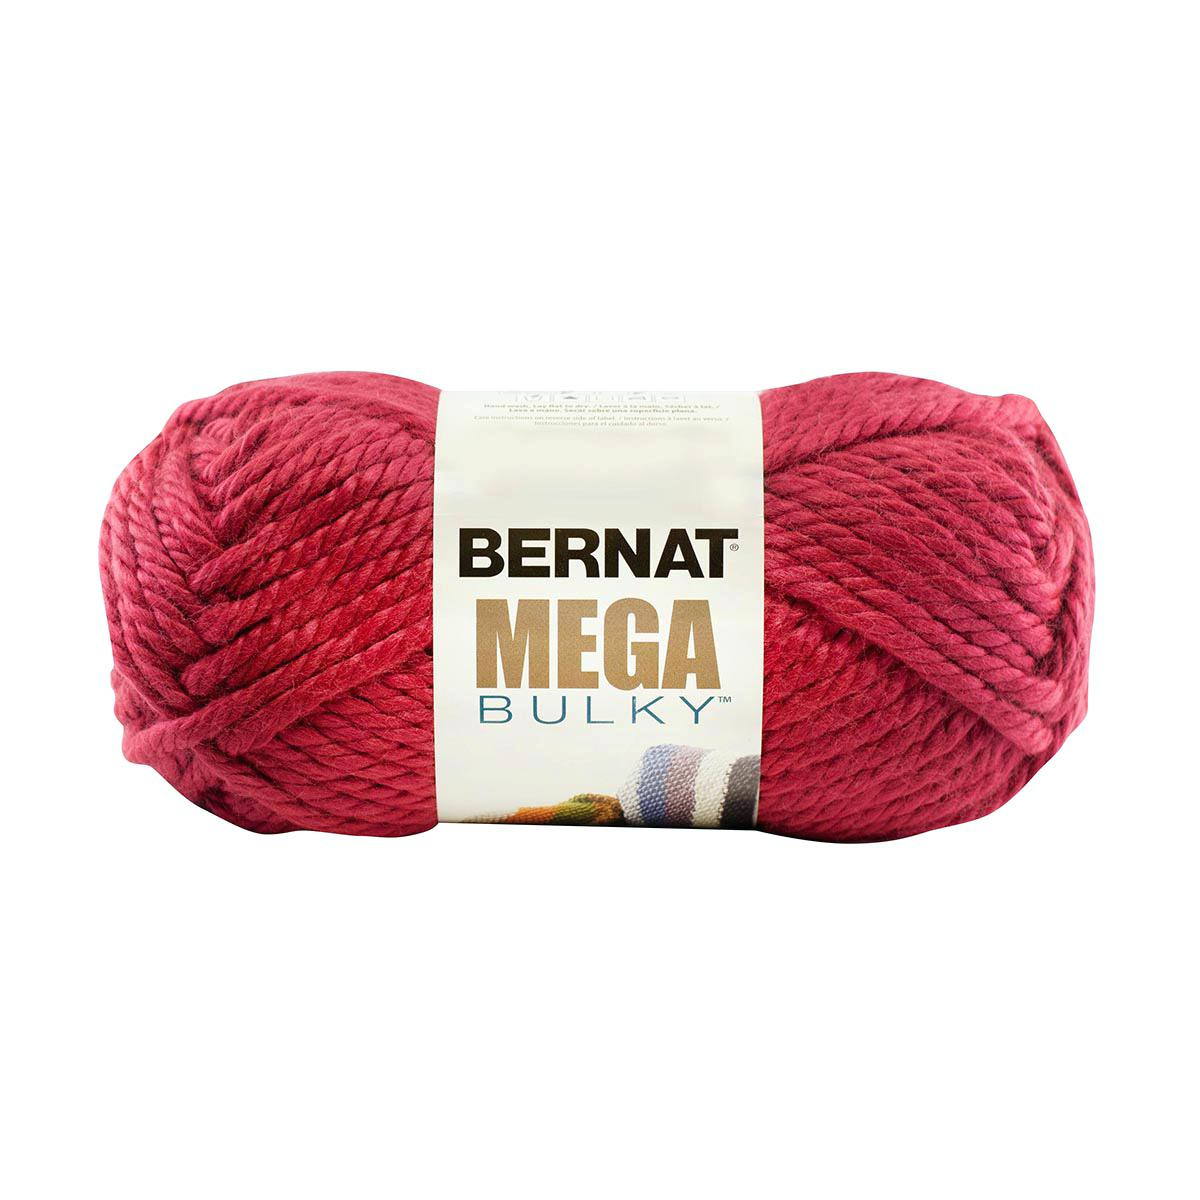 Bernat Super Bulky Yarn Inspirational Bernat Bulky Yarn Super Blanket Patterns – Steve Sroofing Of Luxury 41 Ideas Bernat Super Bulky Yarn